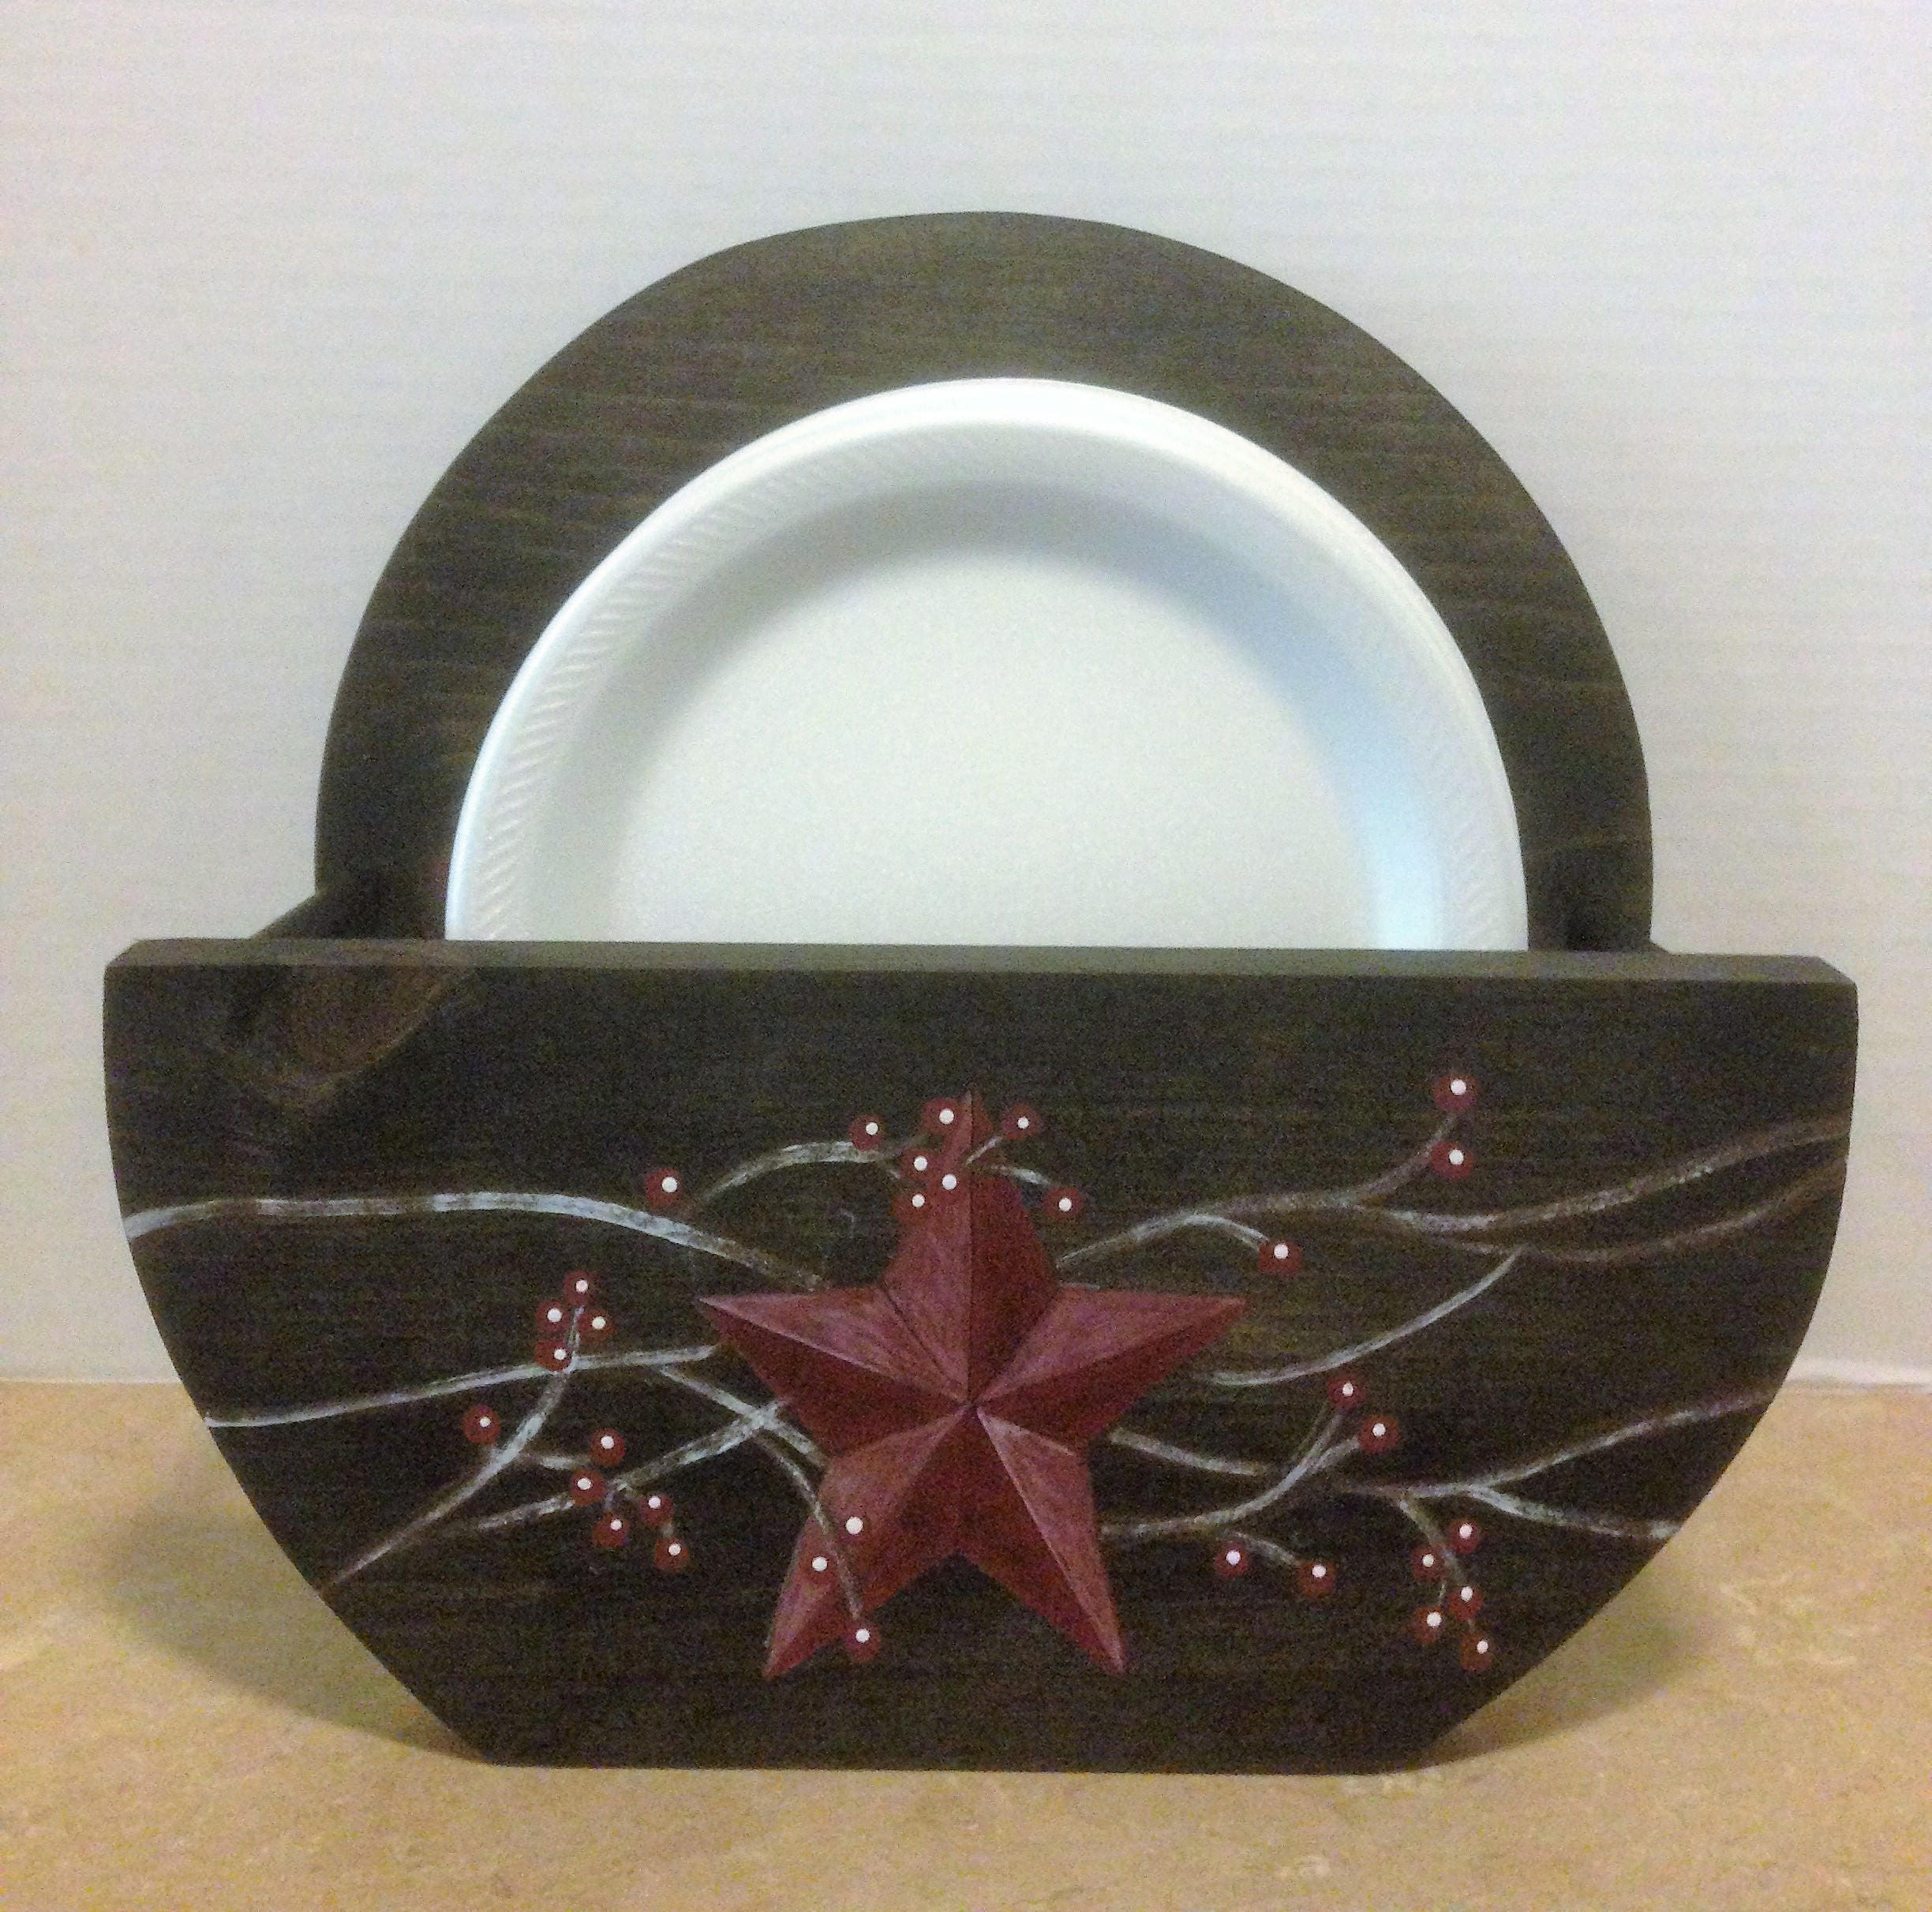 paper plate holder primitive plate holder rustic kitchen decor ...